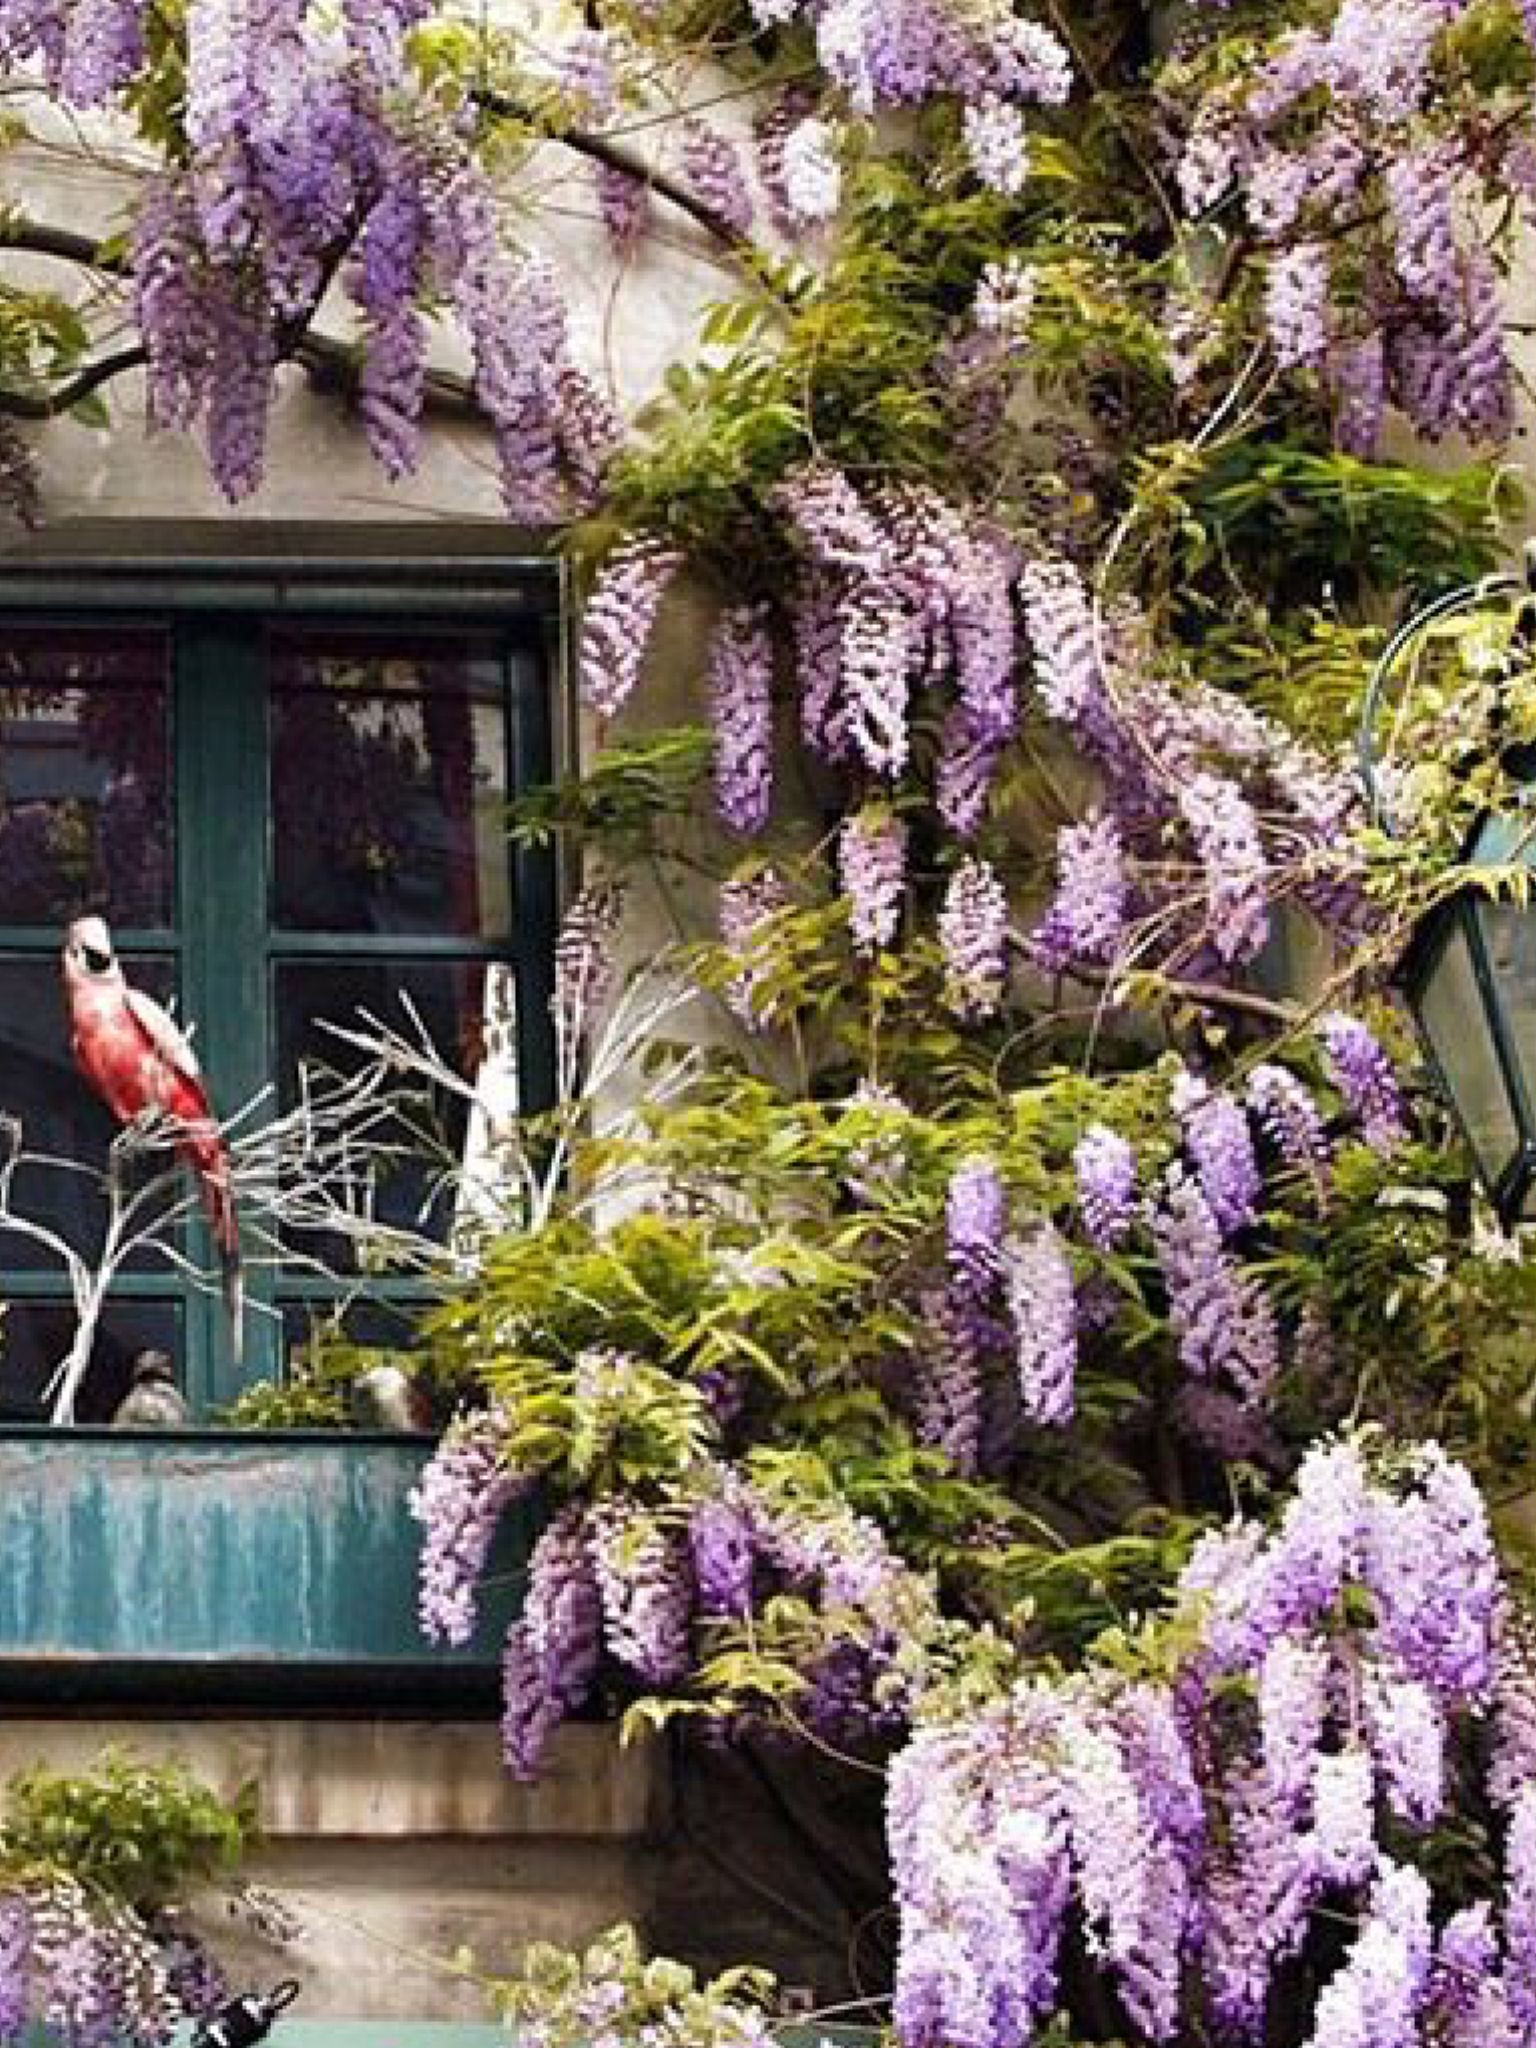 Wisteria with a parrot